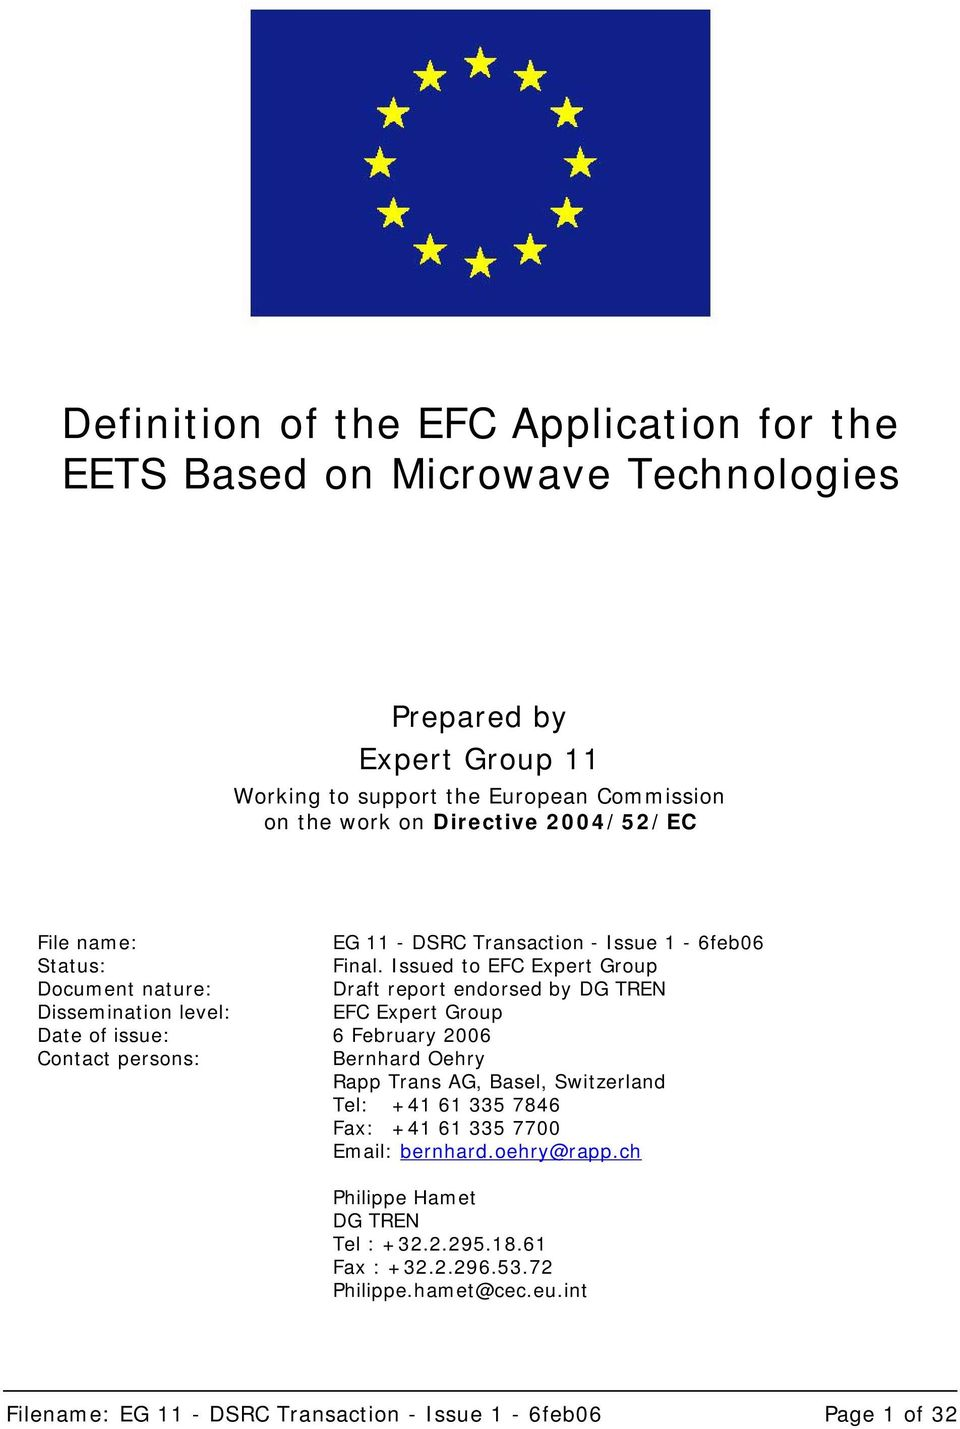 Issued to EFC Expert Group Document nature: Draft report endorsed by DG TREN Dissemination level: EFC Expert Group Date of issue: 6 February 2006 Contact persons: Bernhard